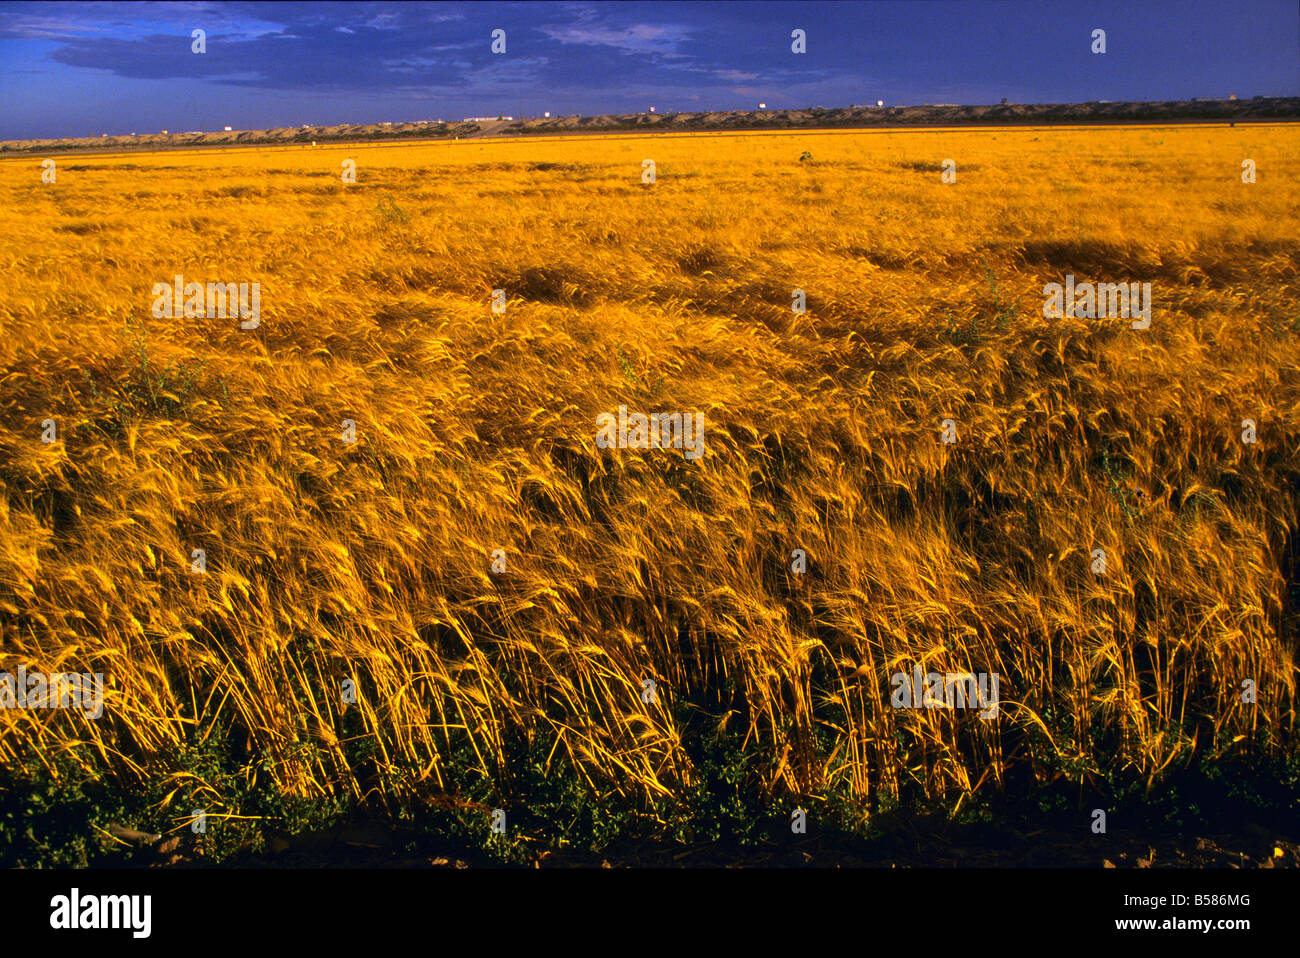 Ripe wheat in an irrigated field blows in the wind in the late afternoon, Arizona, USA - Stock Image